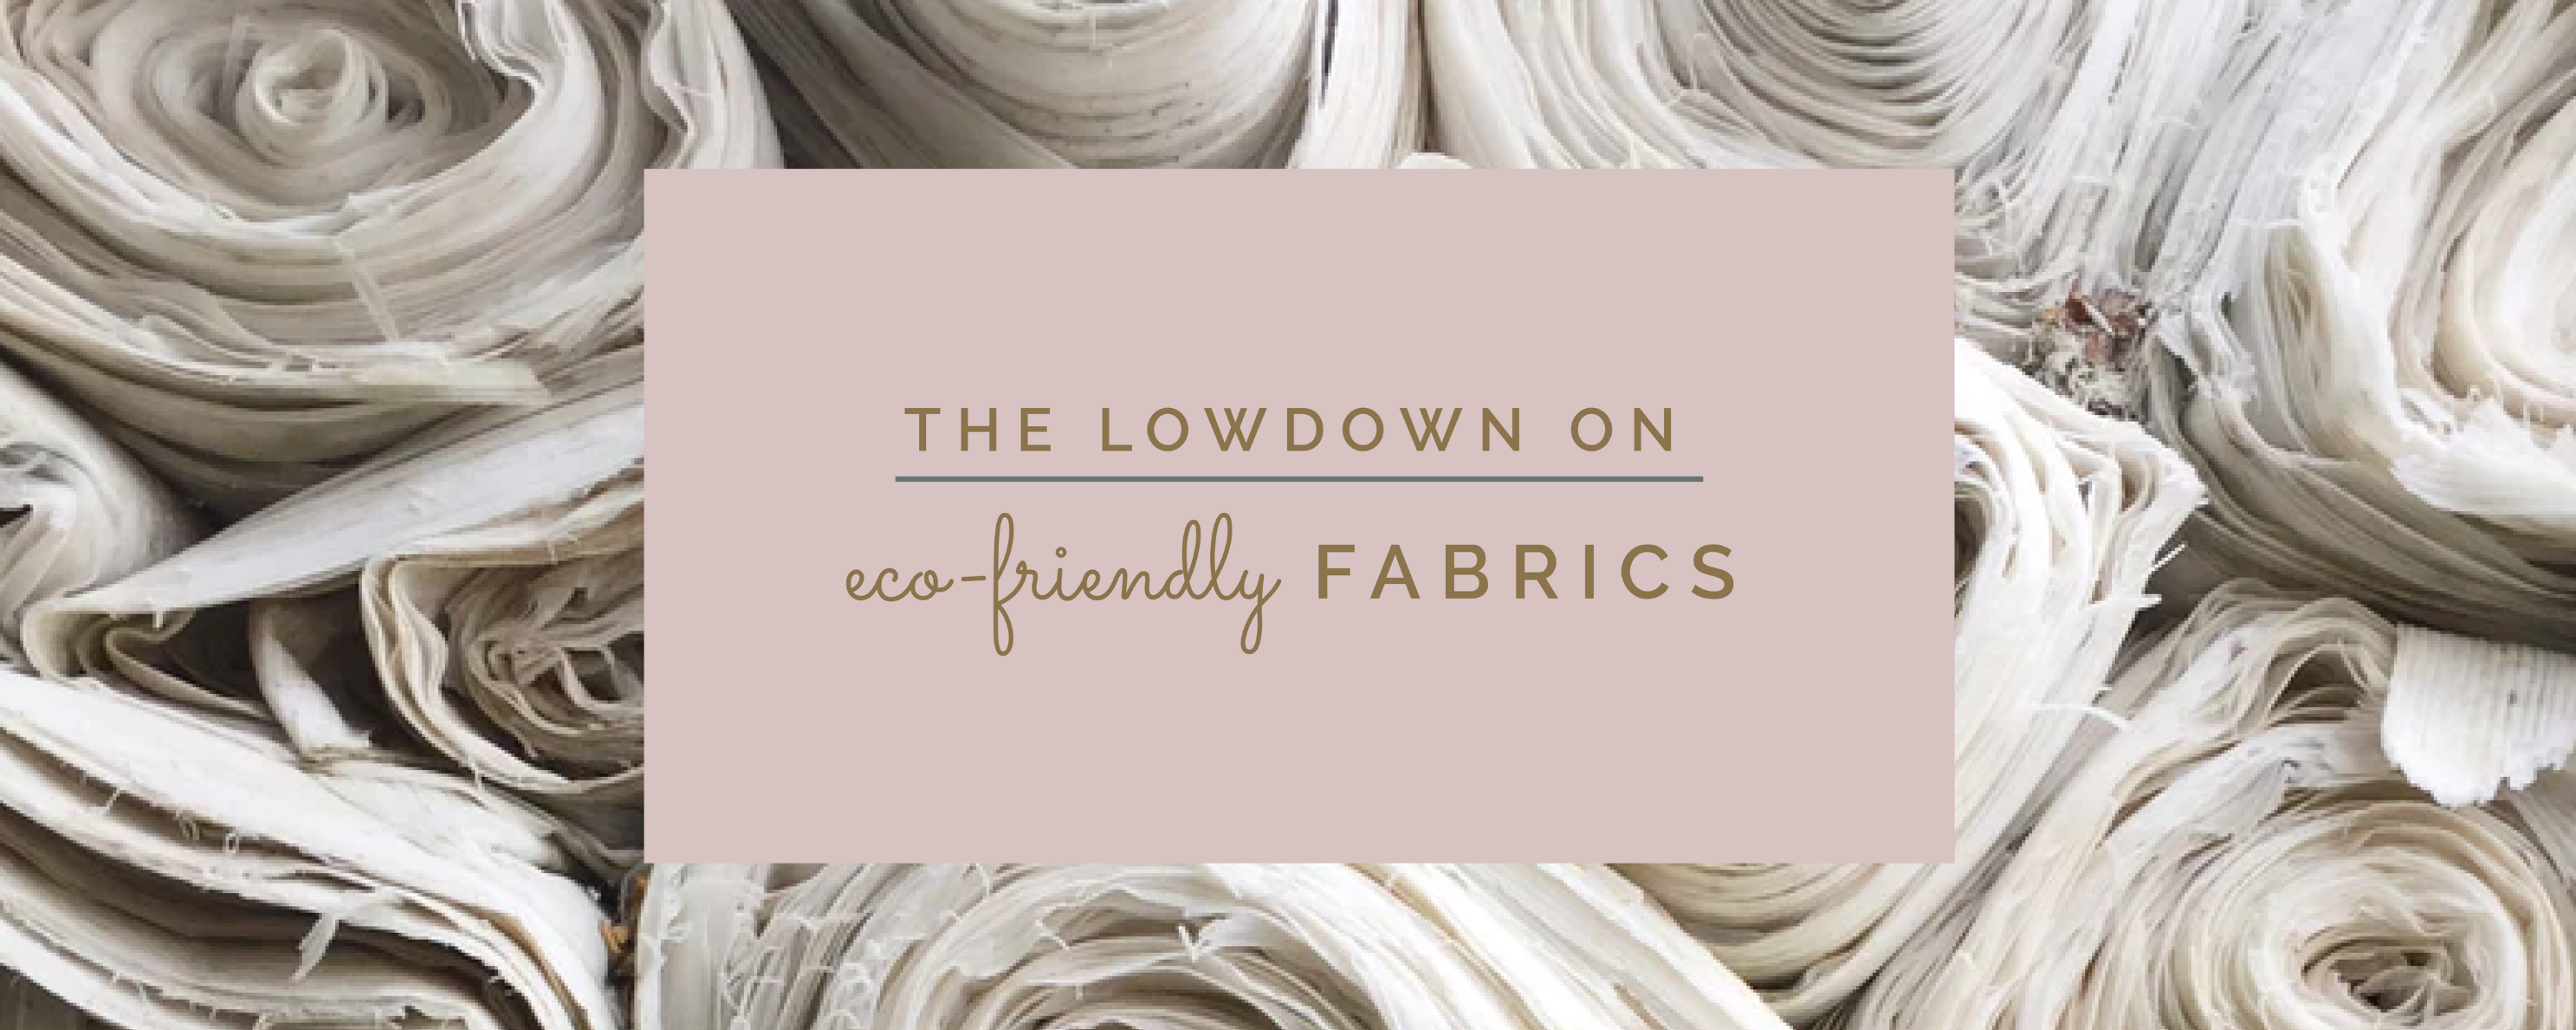 The Lowdown on Eco Friendly Fabrics at Azura Bay